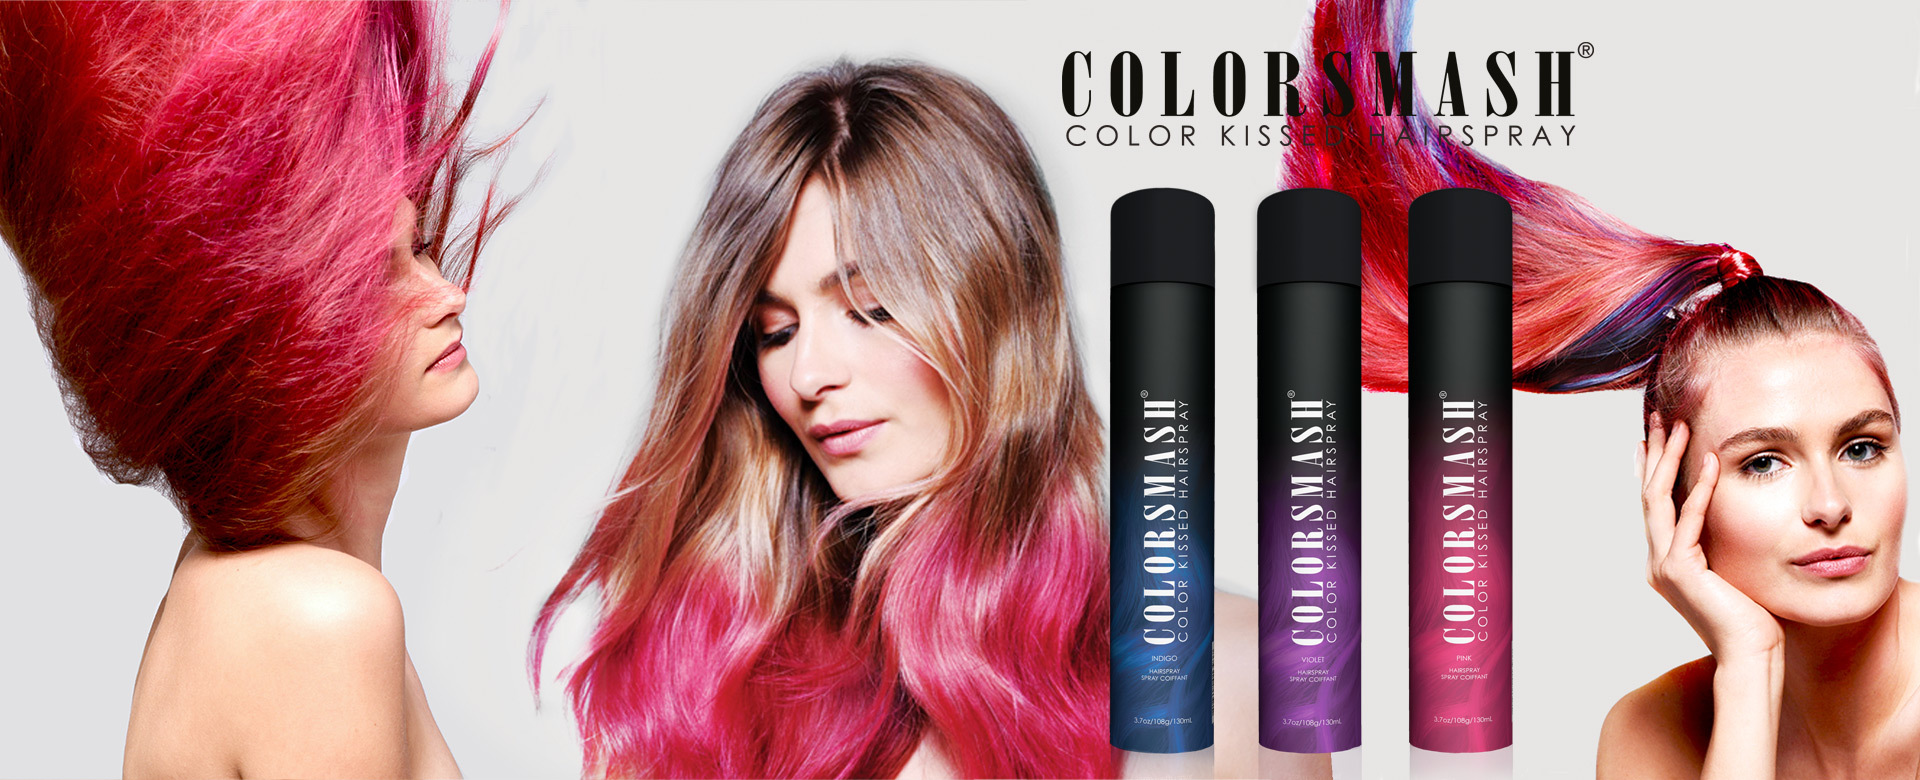 COLORMASH Haar Farbsprays!. (© Great Lengths)